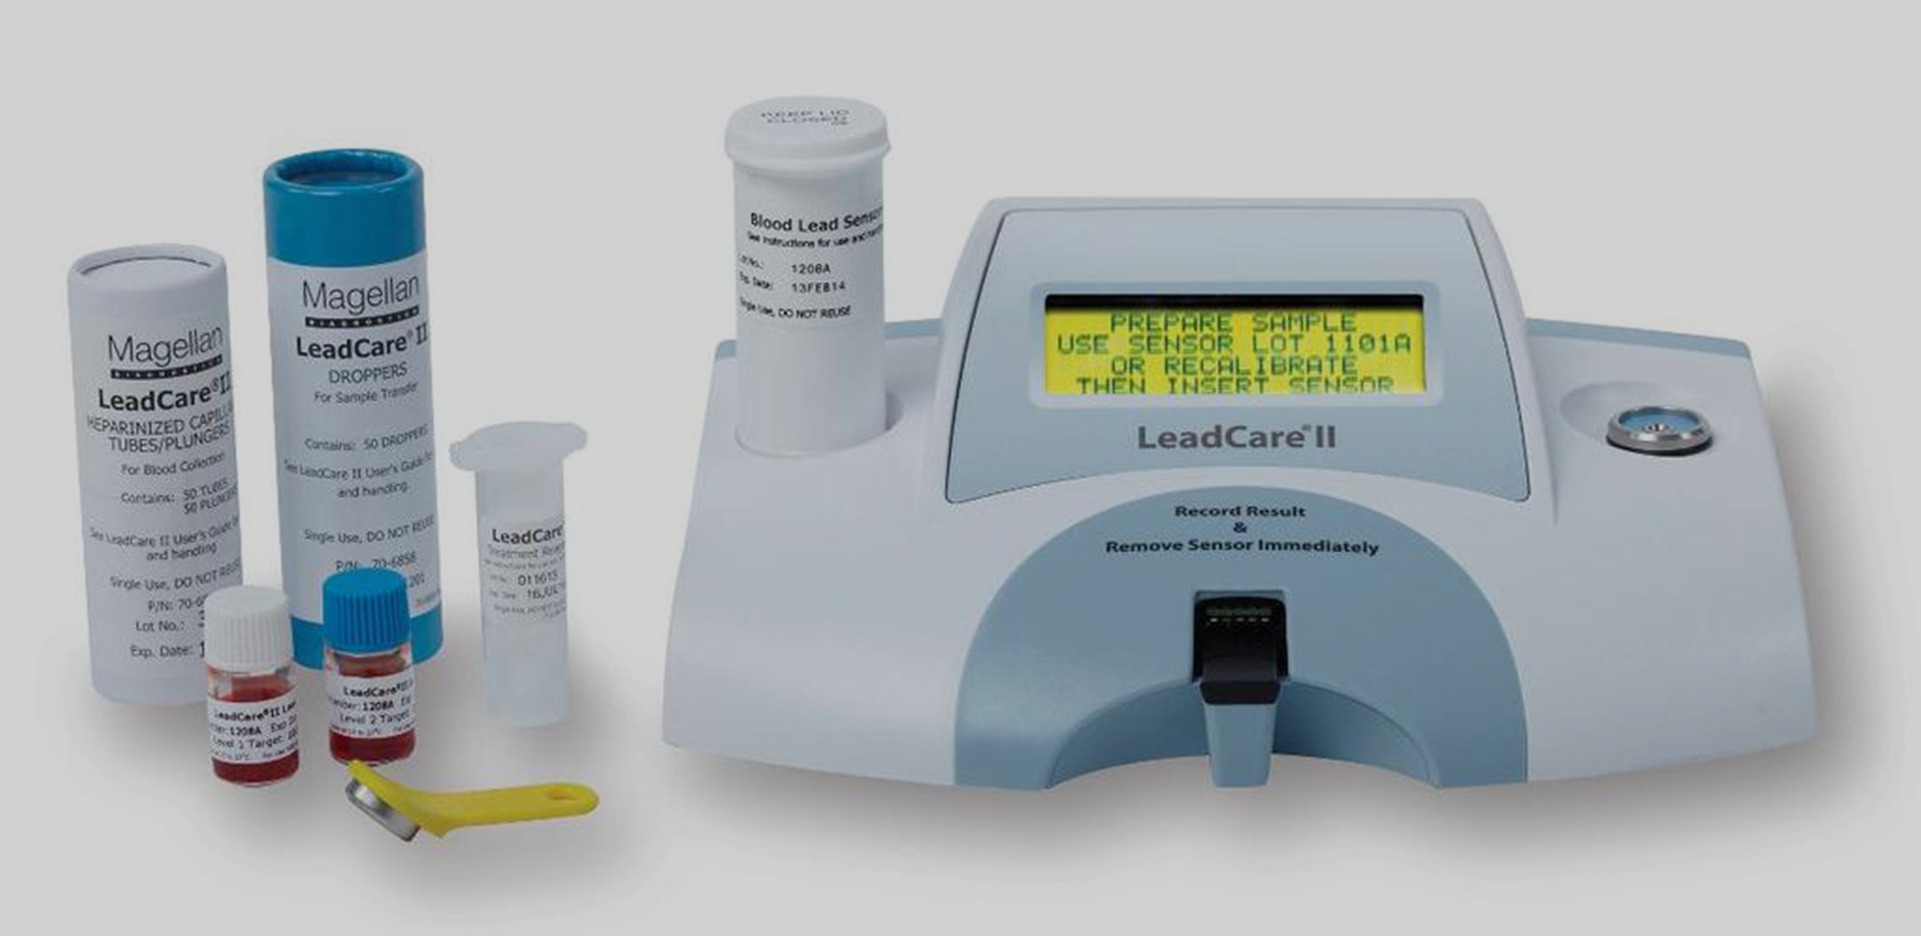 Lead Care II Products Johannesburg South Africa